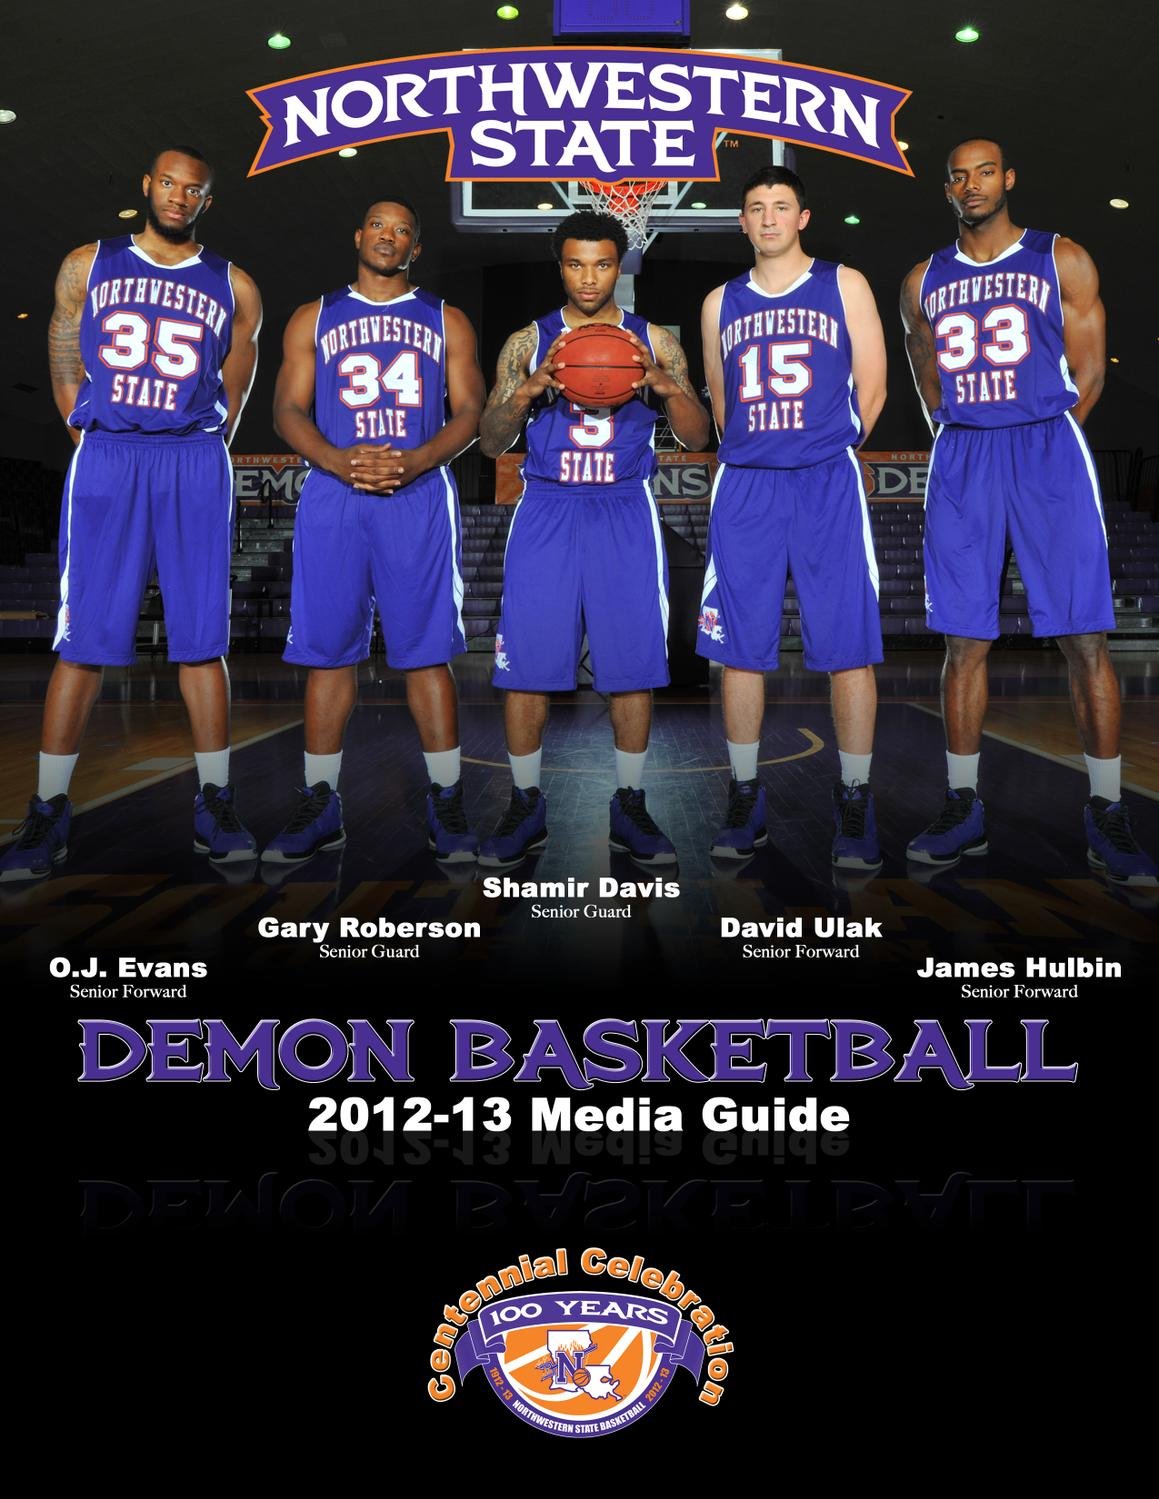 2016-17 Northwestern State Women's Basketball Media Guide by Northwestern  State Sports Information - issuu